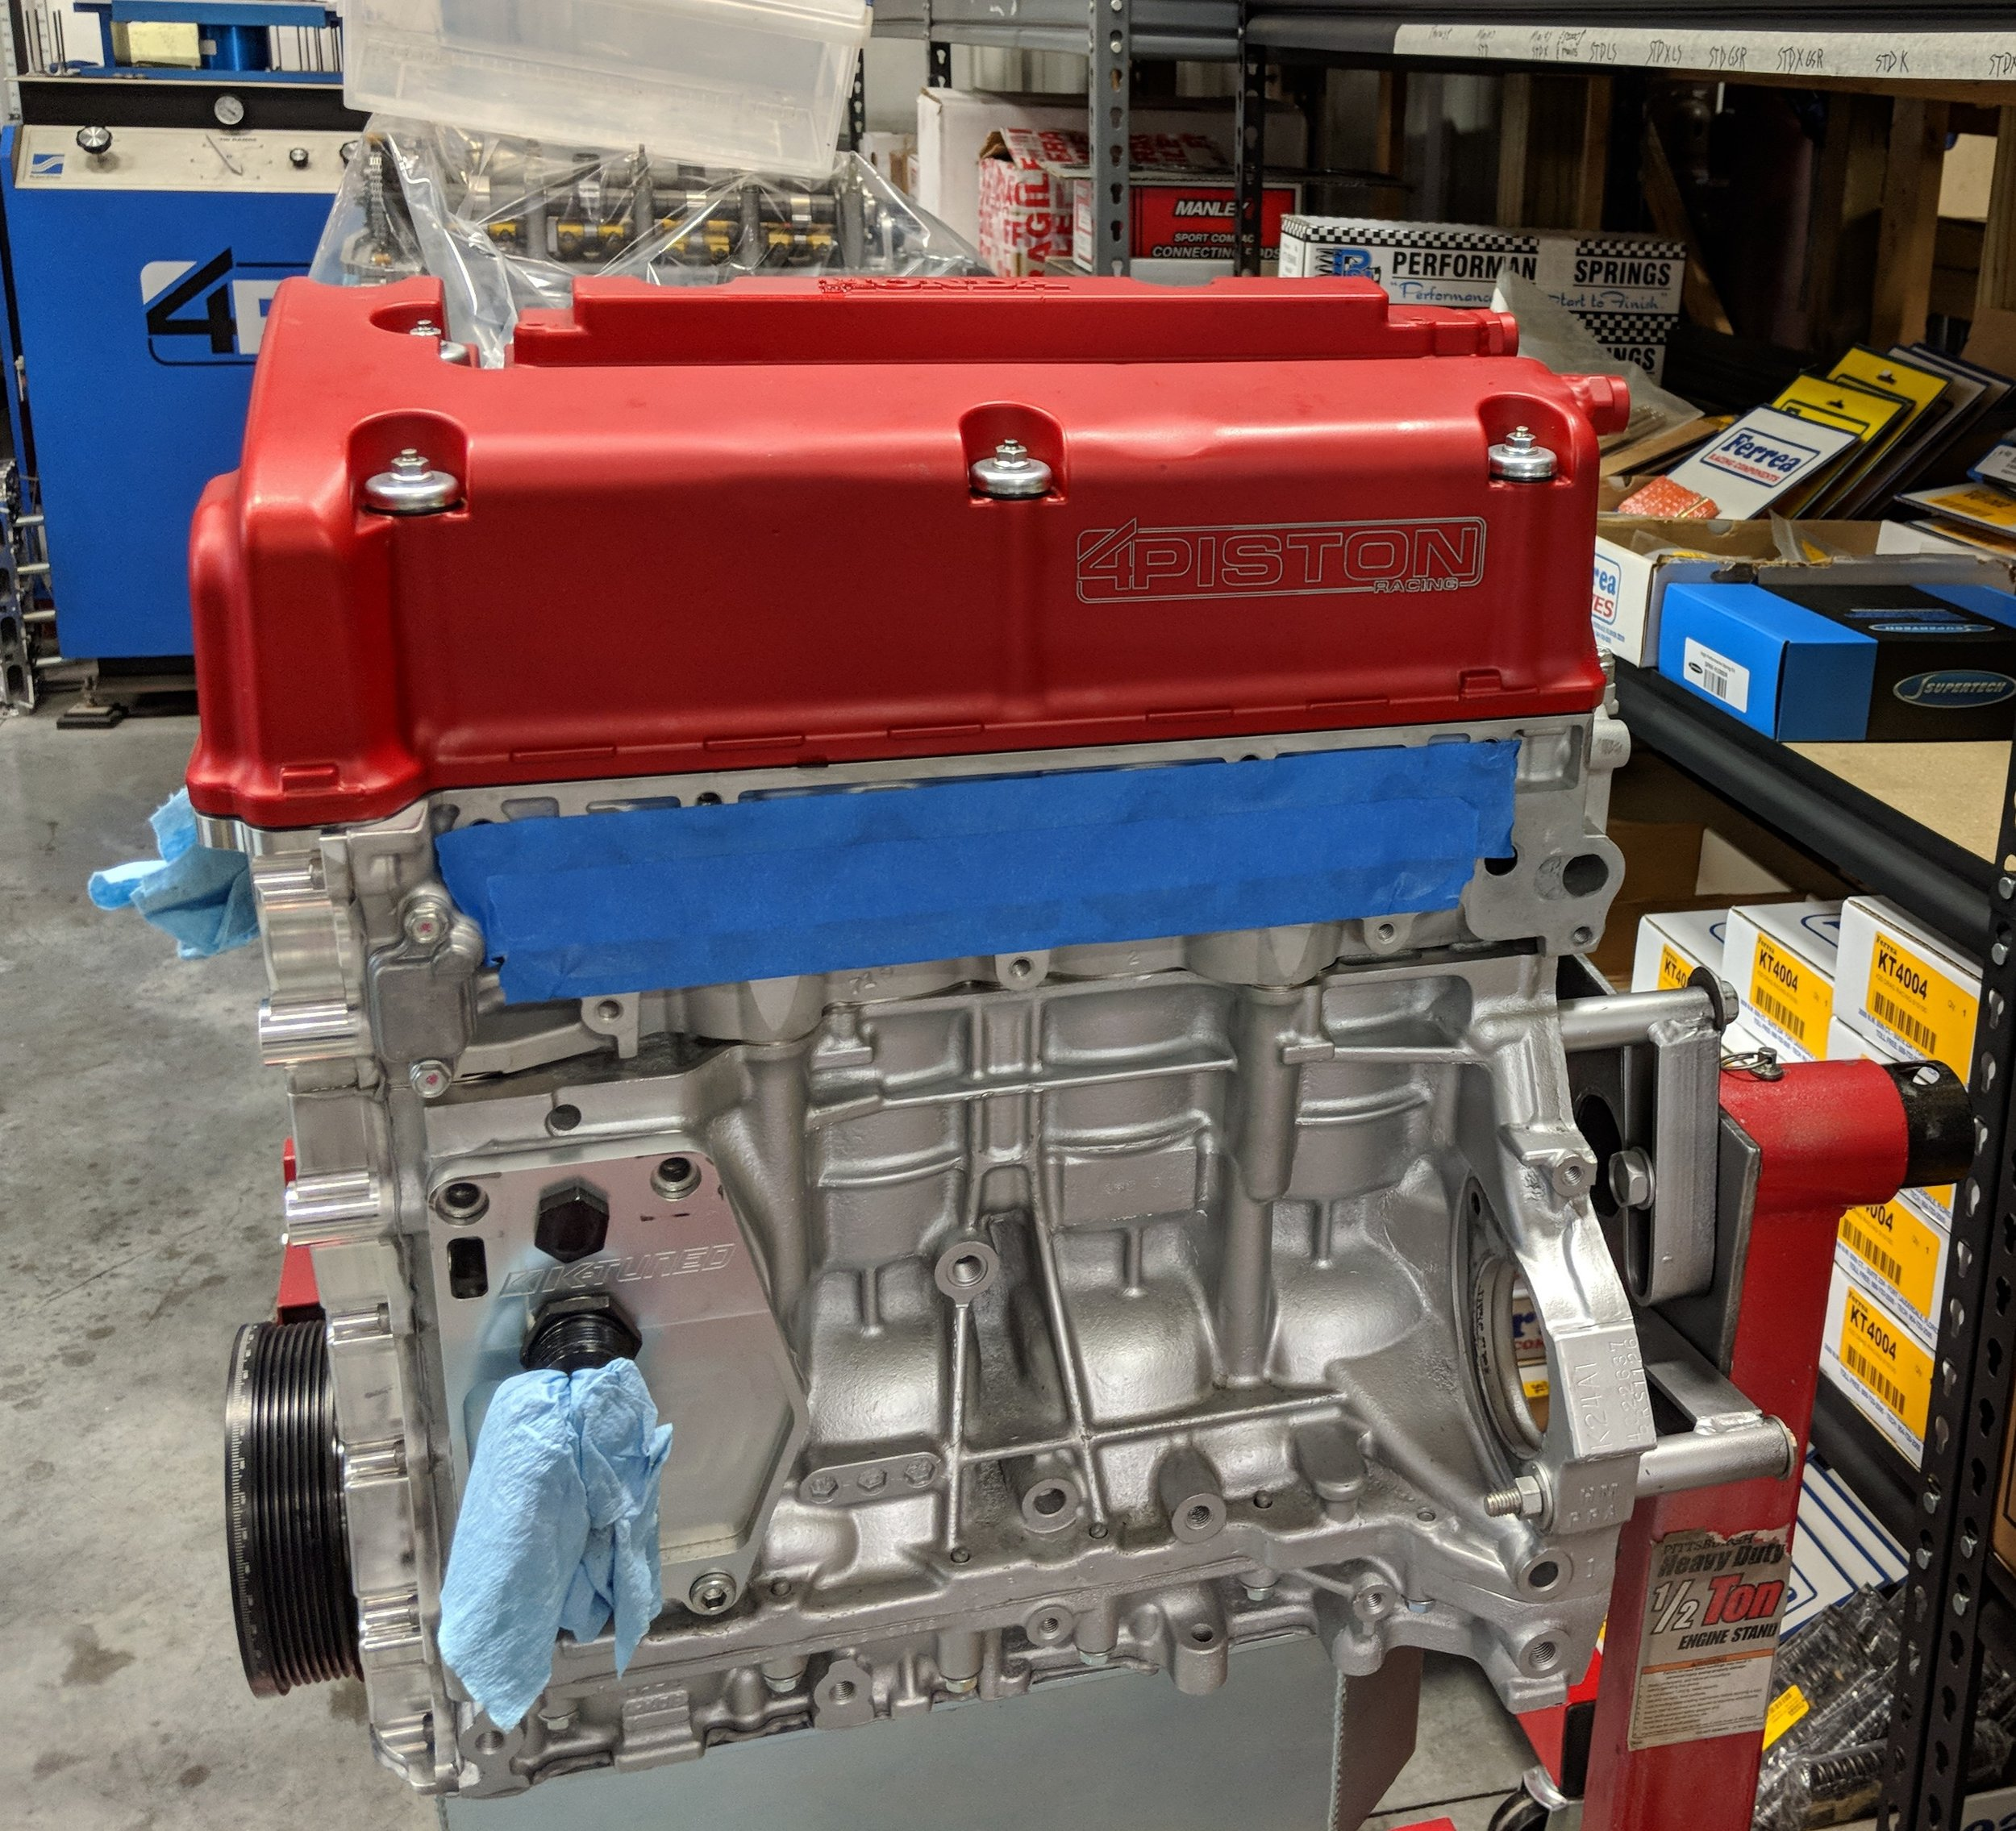 4 Piston Racing focuses primarily on Honda, and their cylinder heads and race engines are incredible, and border on art work, with the impeccable attention to detail. They also make insane power. A K24 seen here.